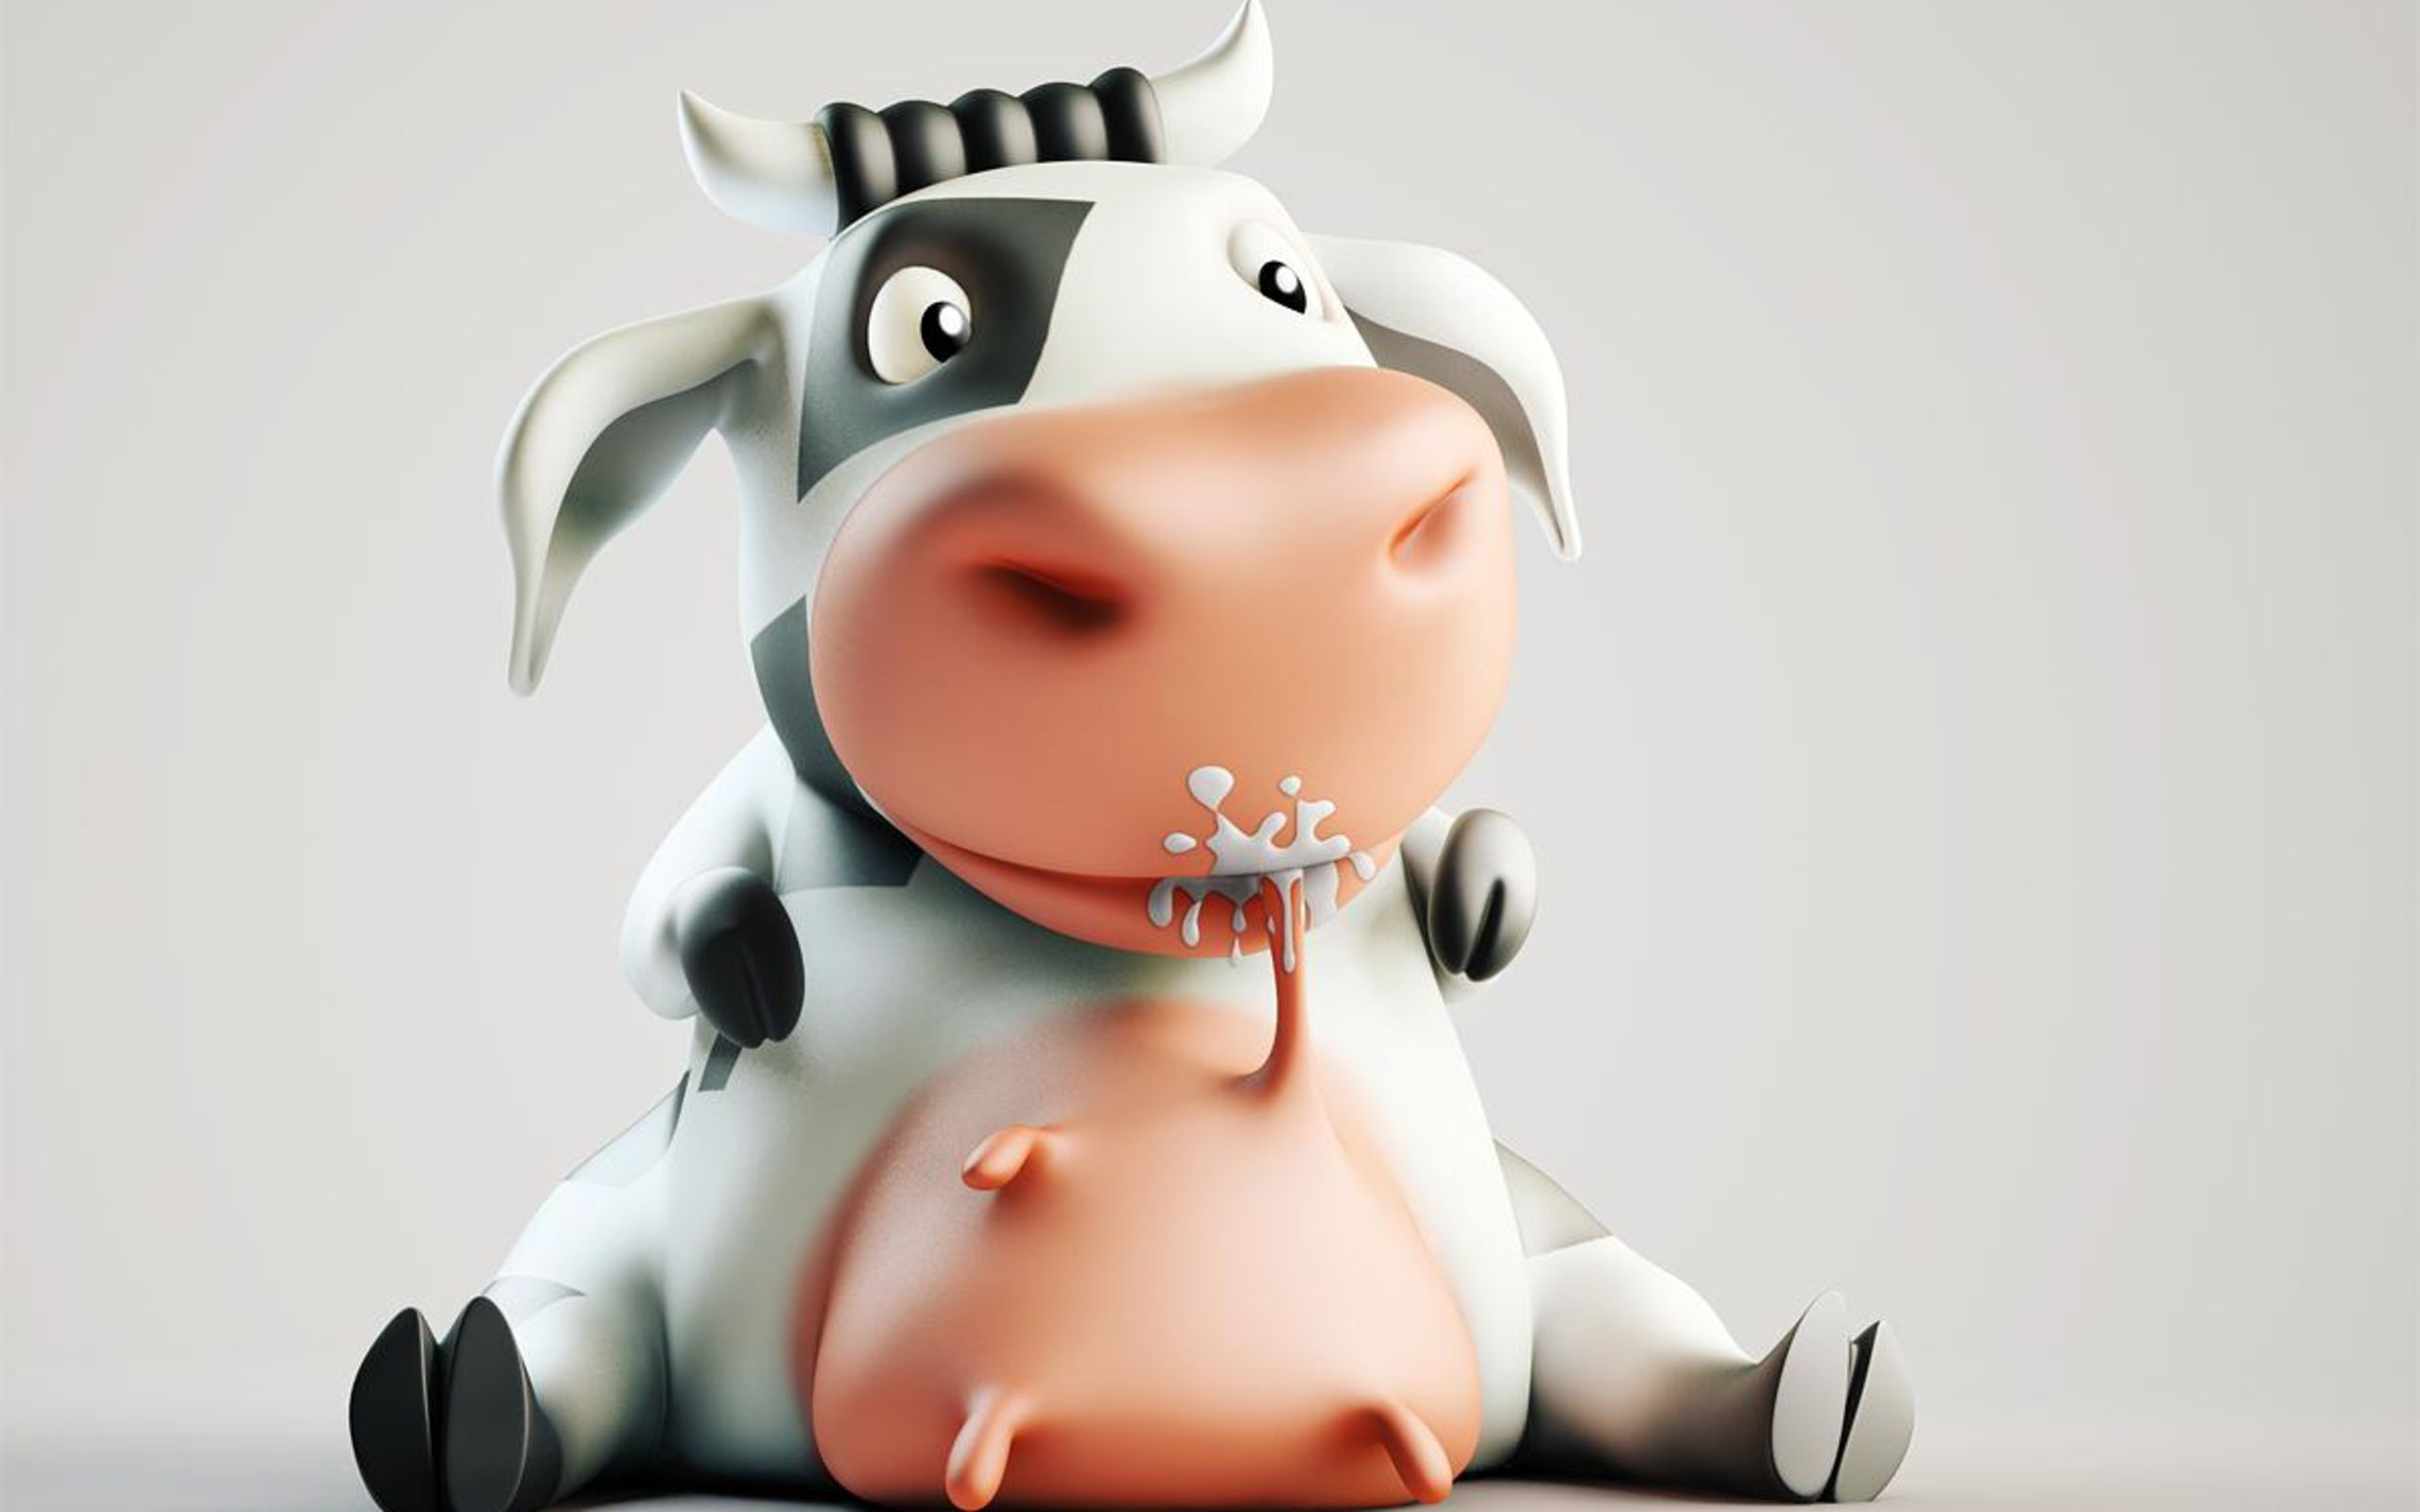 Funny Cow Wallpapers Hd Cows Funny Cow Wallpaper Baby Cows